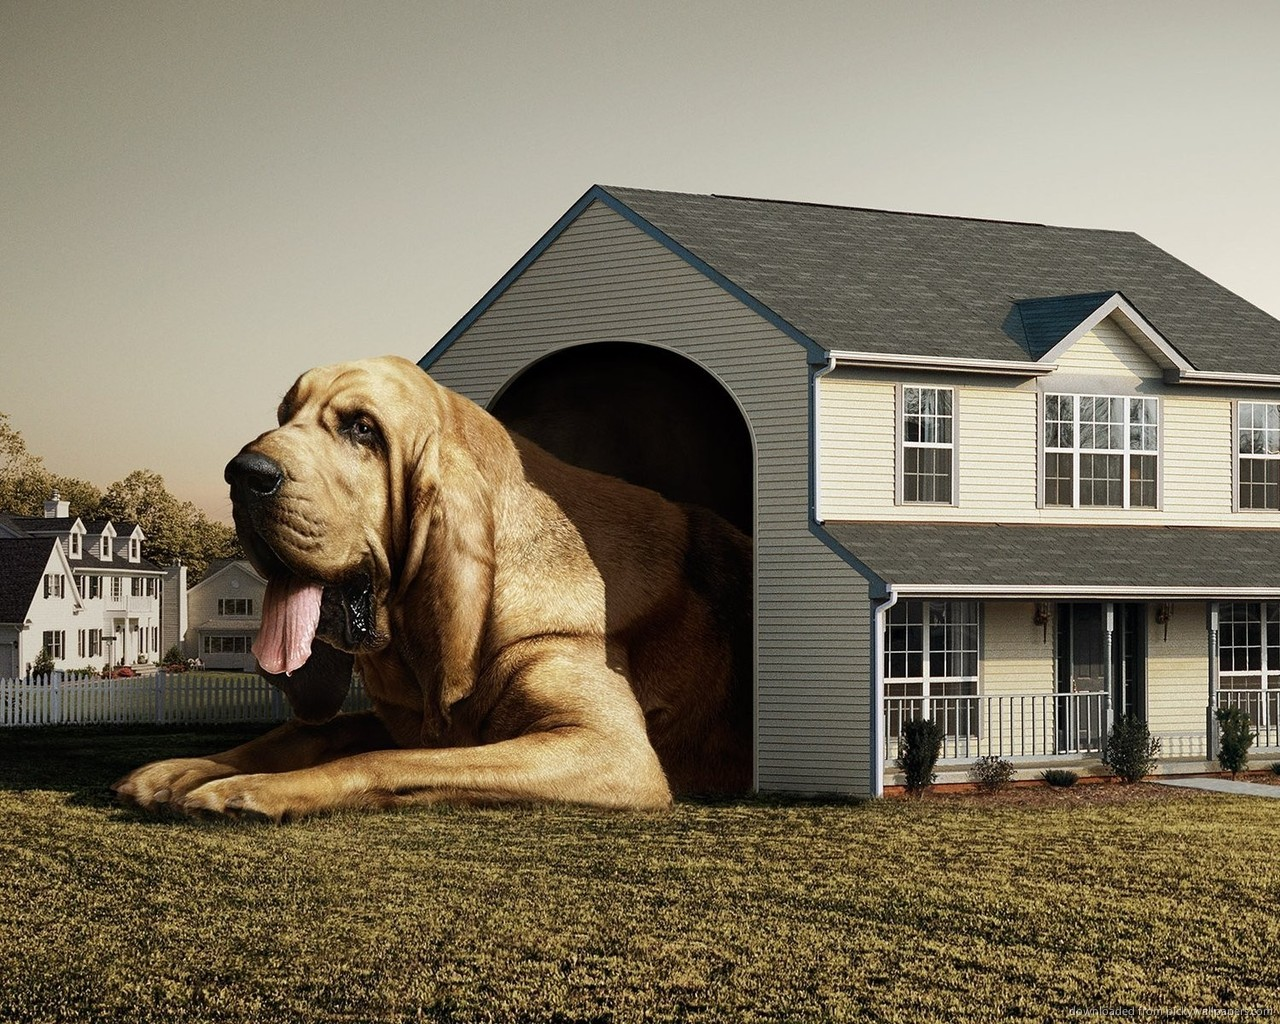 Dog House Wallpaper